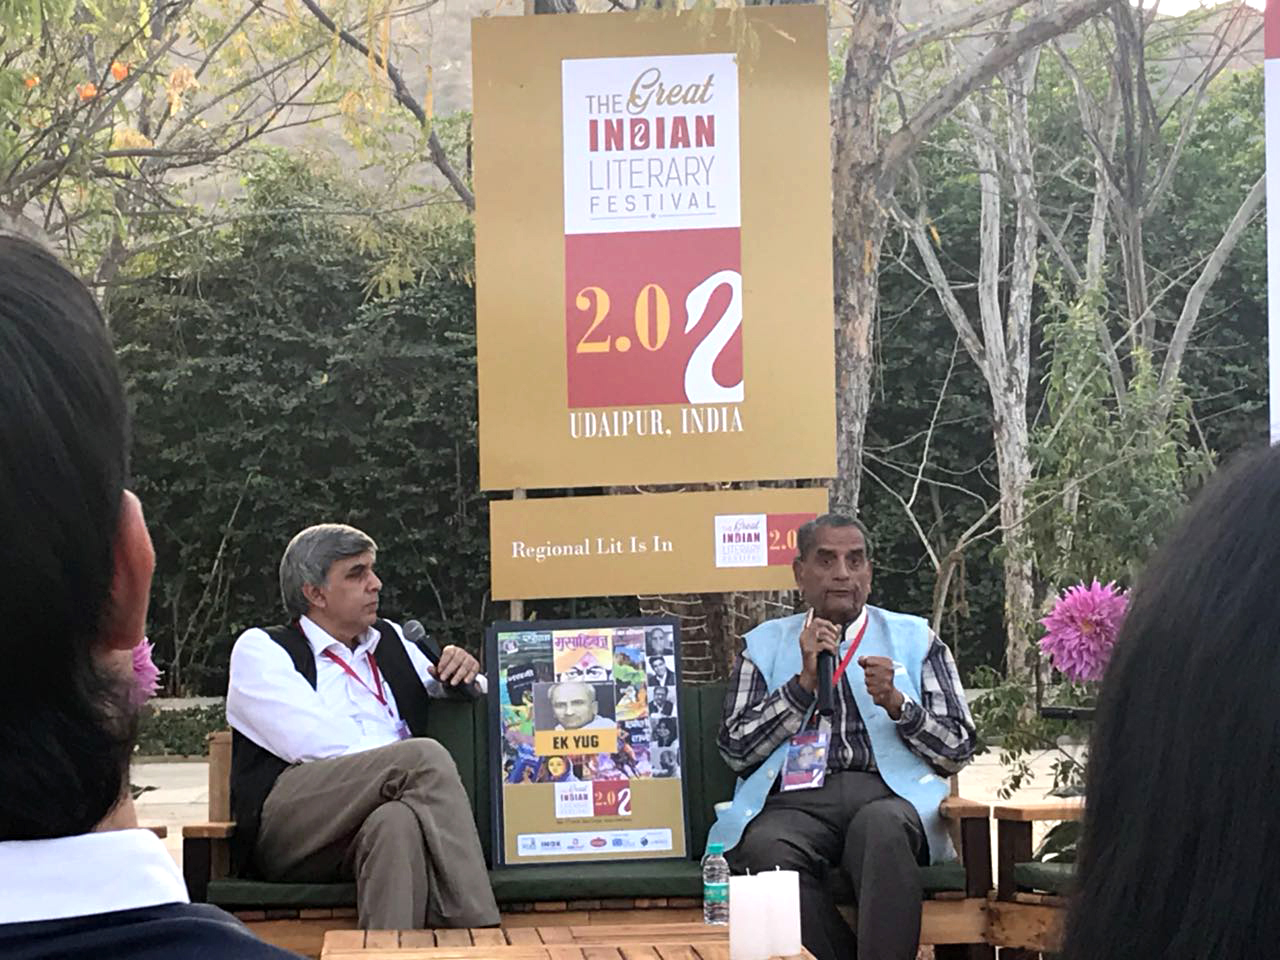 Prof Dinesh Singh and Prof Ramakant Verma in discussion